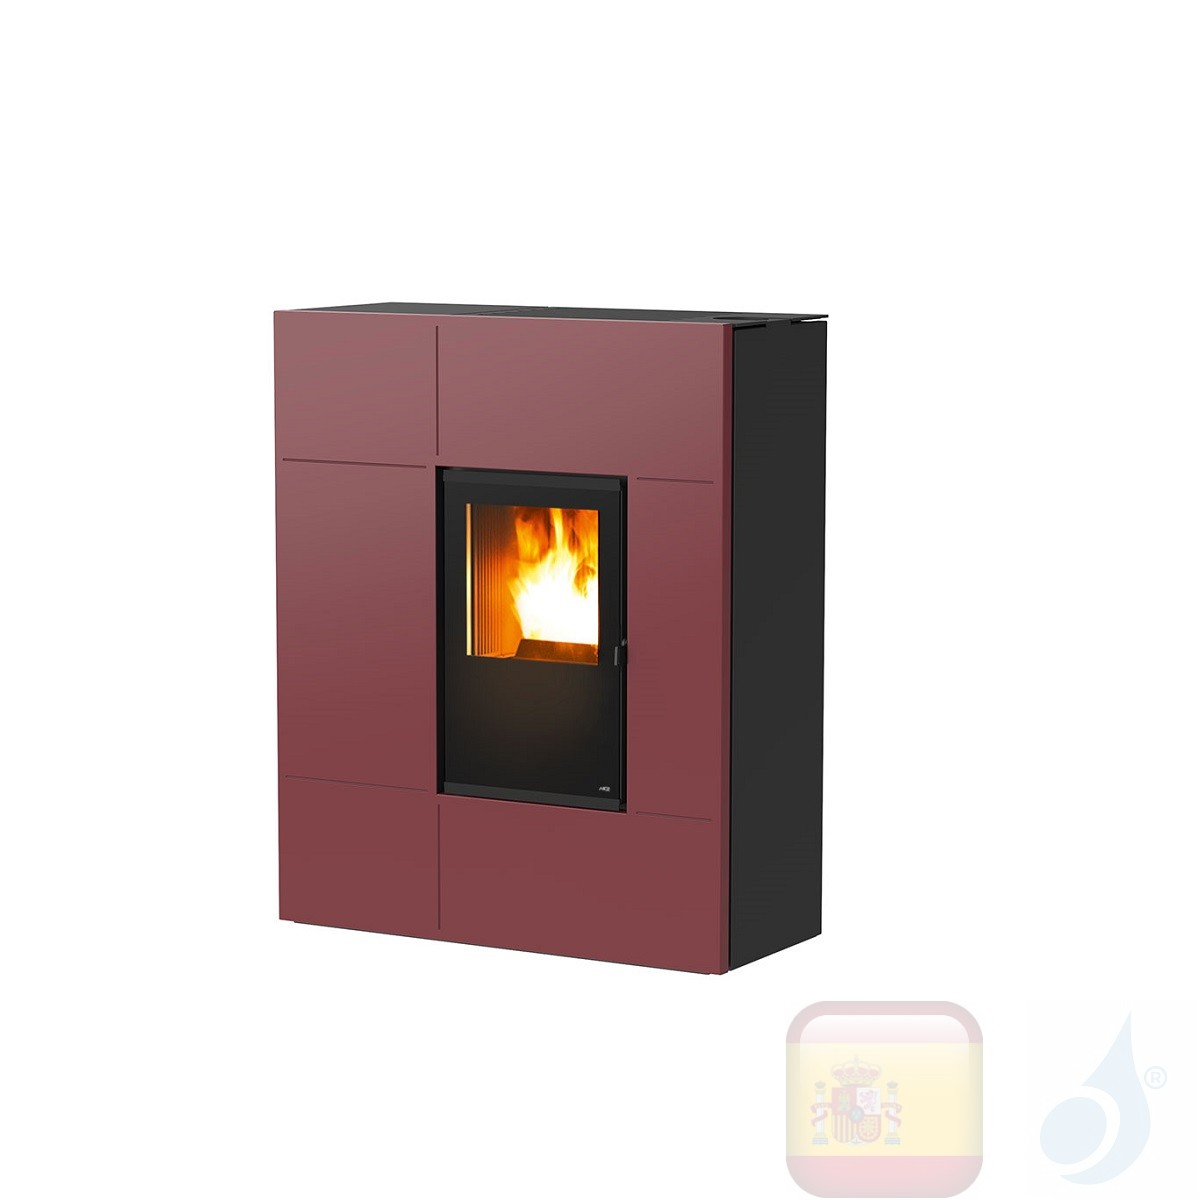 Estufa de pellets MCZ 11.9 kW Stream Comfort Air 12 M1 metal Bordeaux